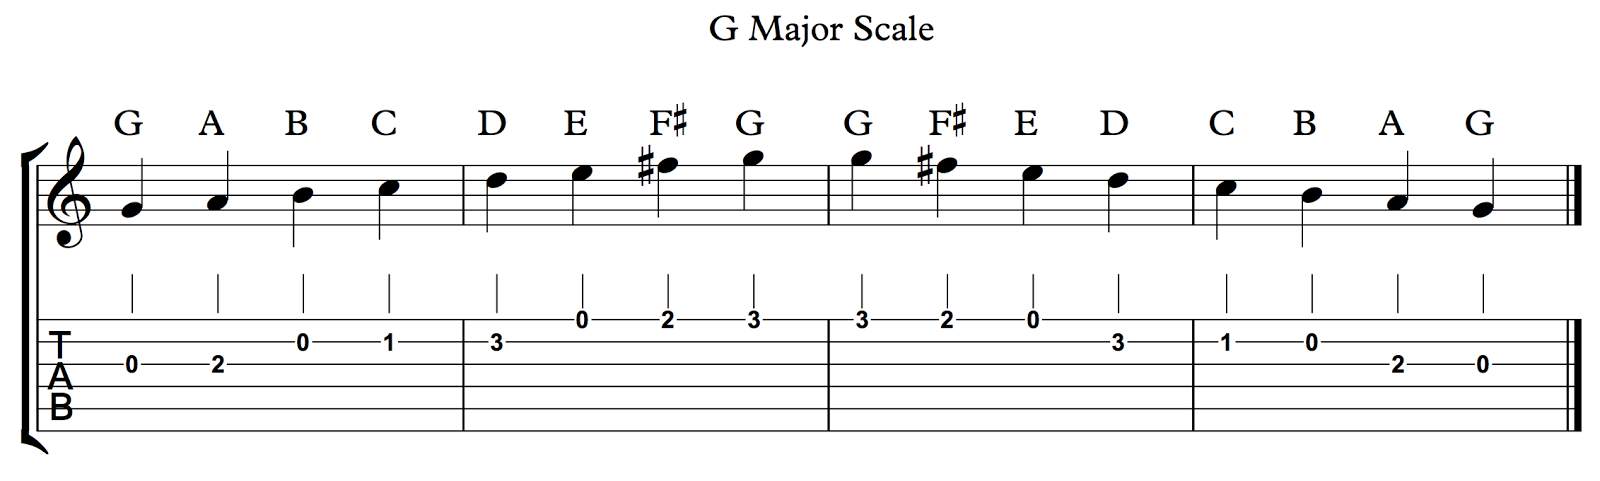 relationship between notes on a musical scale